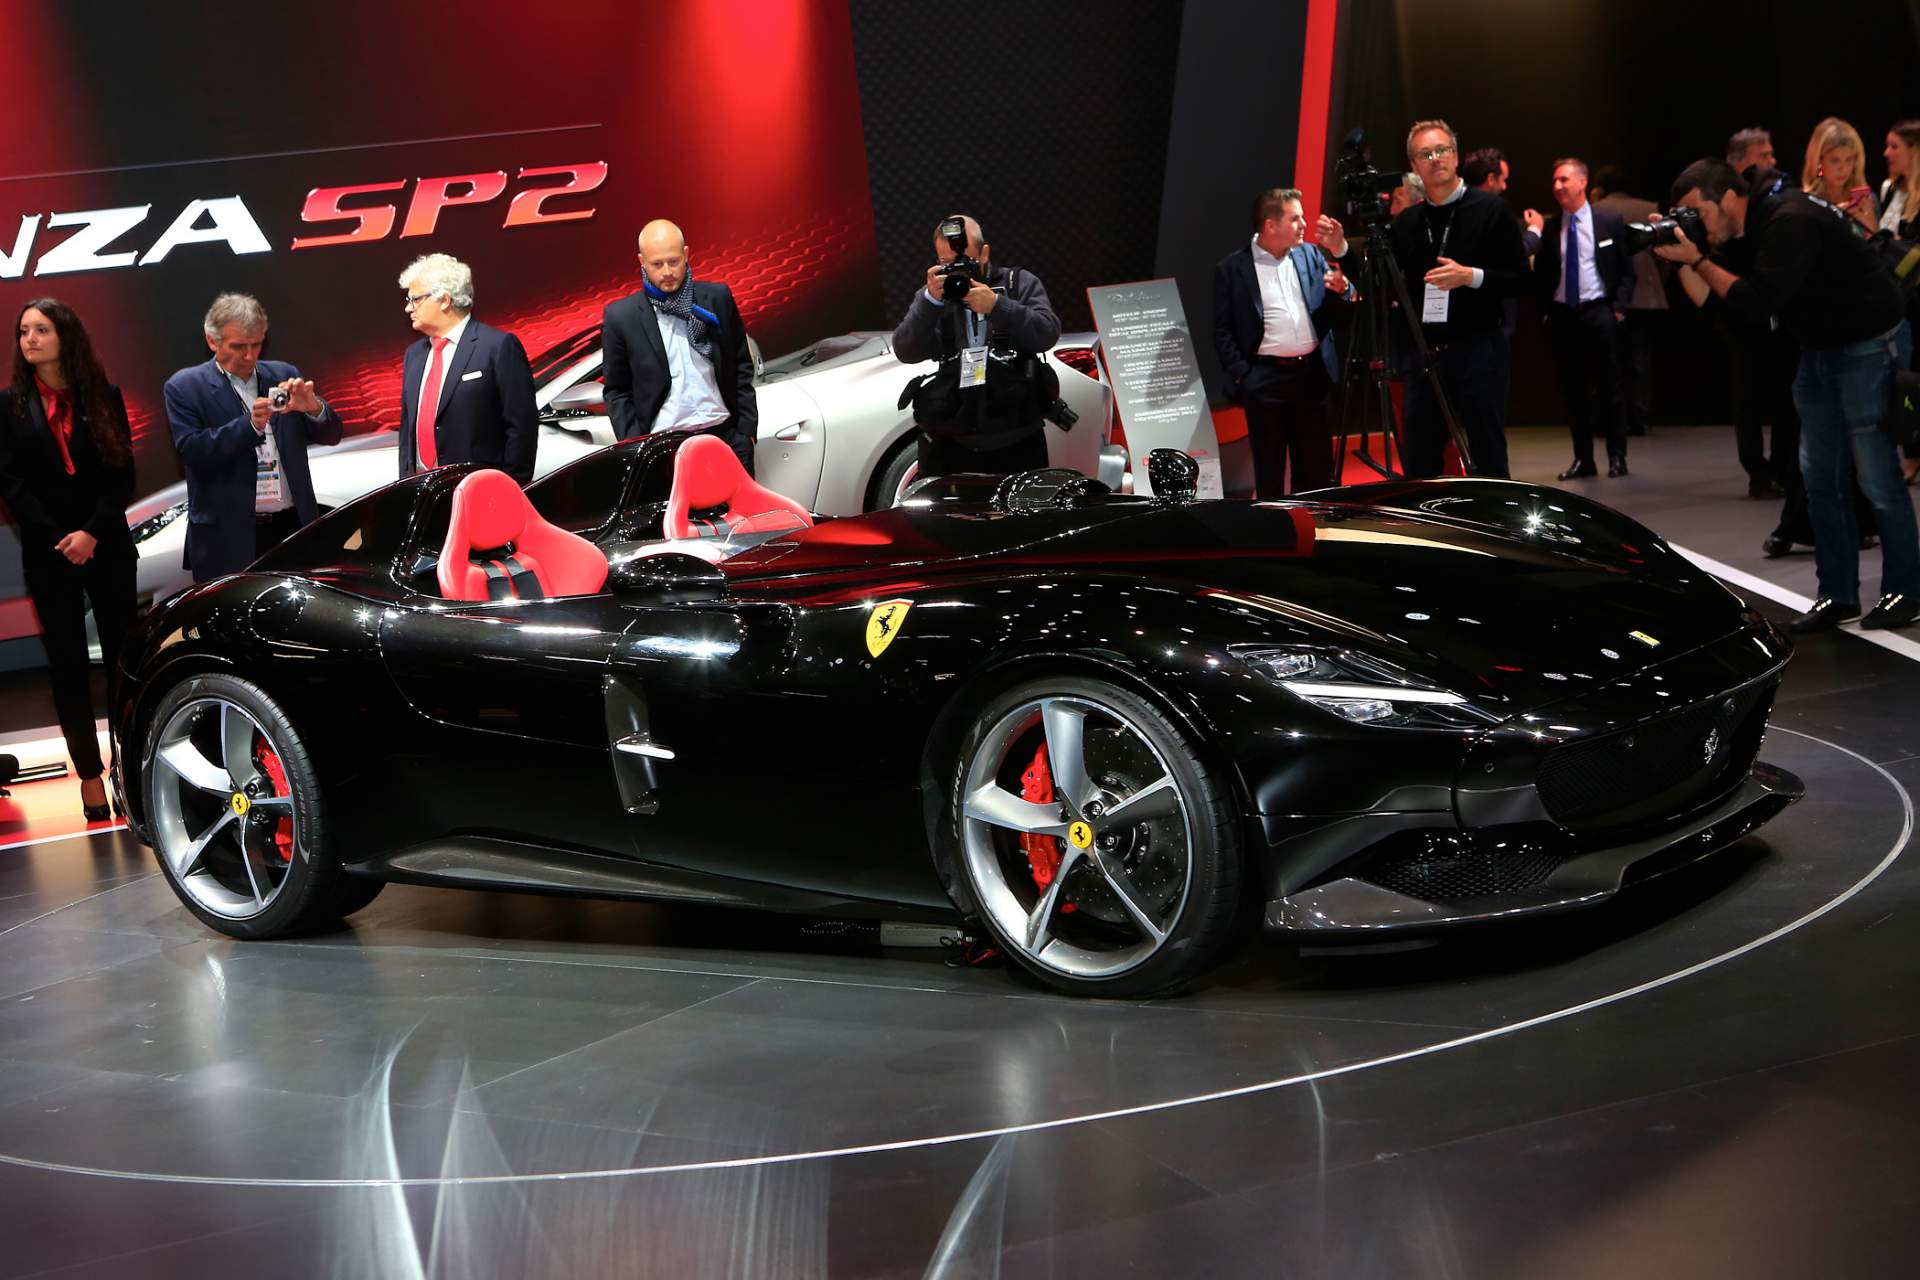 ferrari-monza-sp1756cd132-ferrari-monza-sp2-at-paris-auto-show-8.jpg